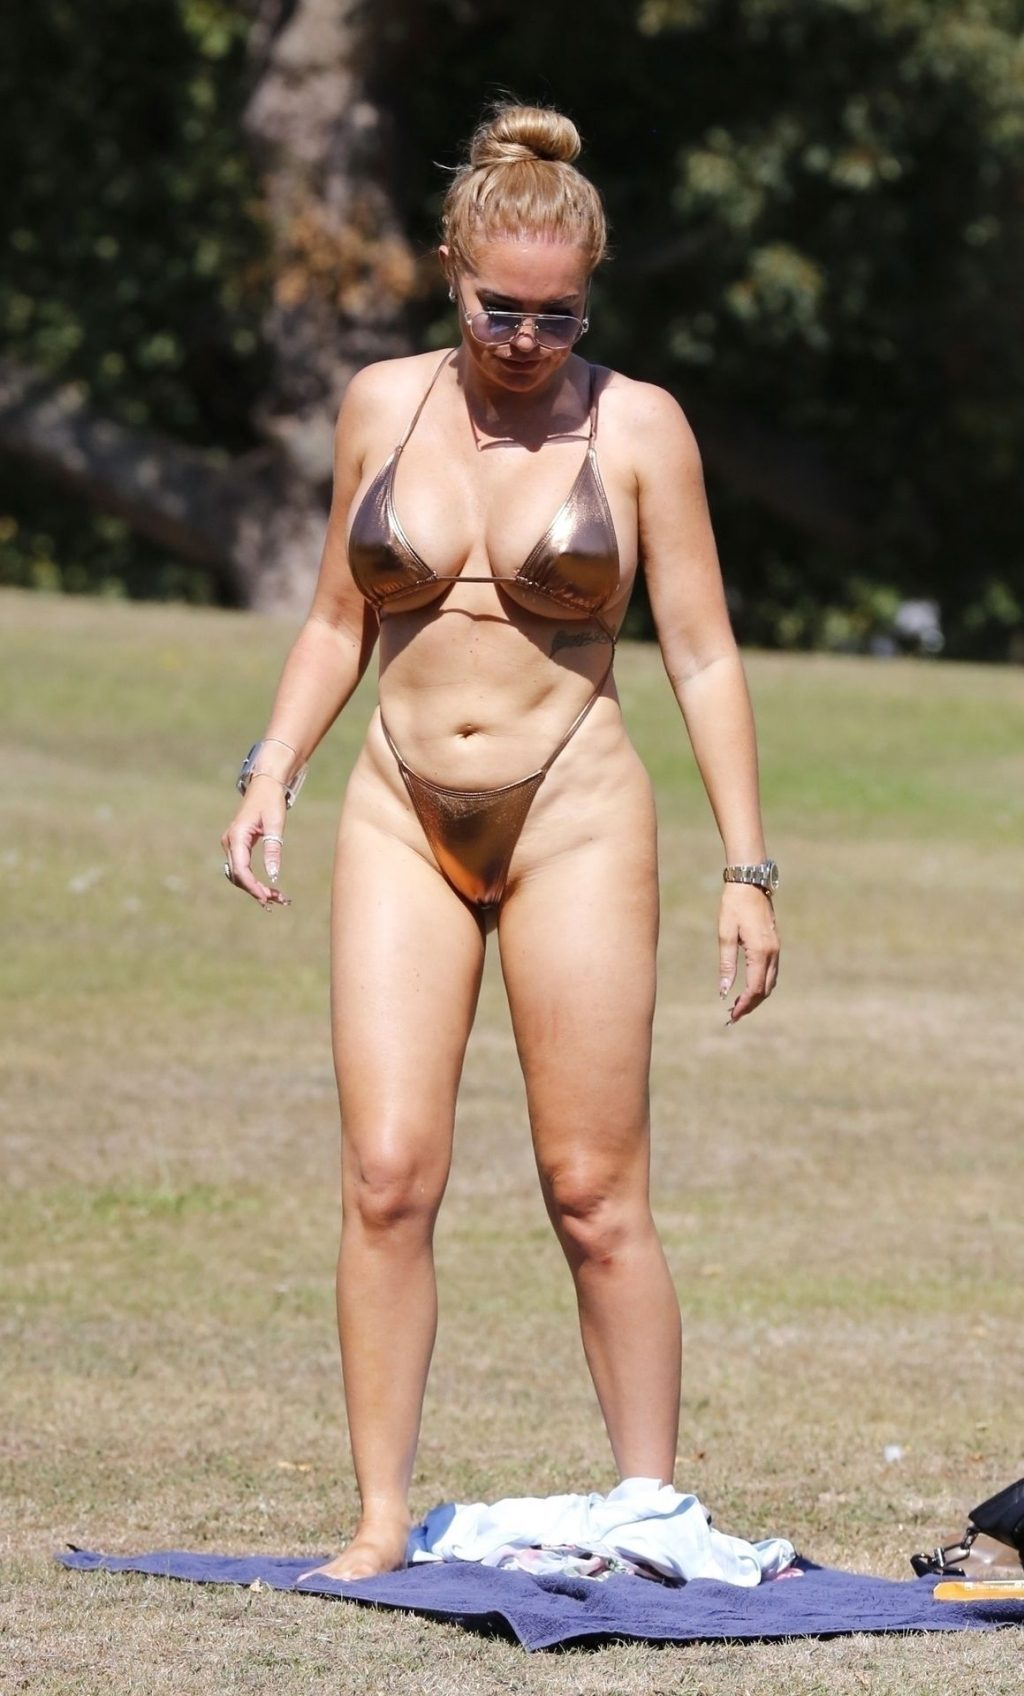 Aisleyne Horgan-Wallace Strips Off During the August Heatwave in London (34 Photos)